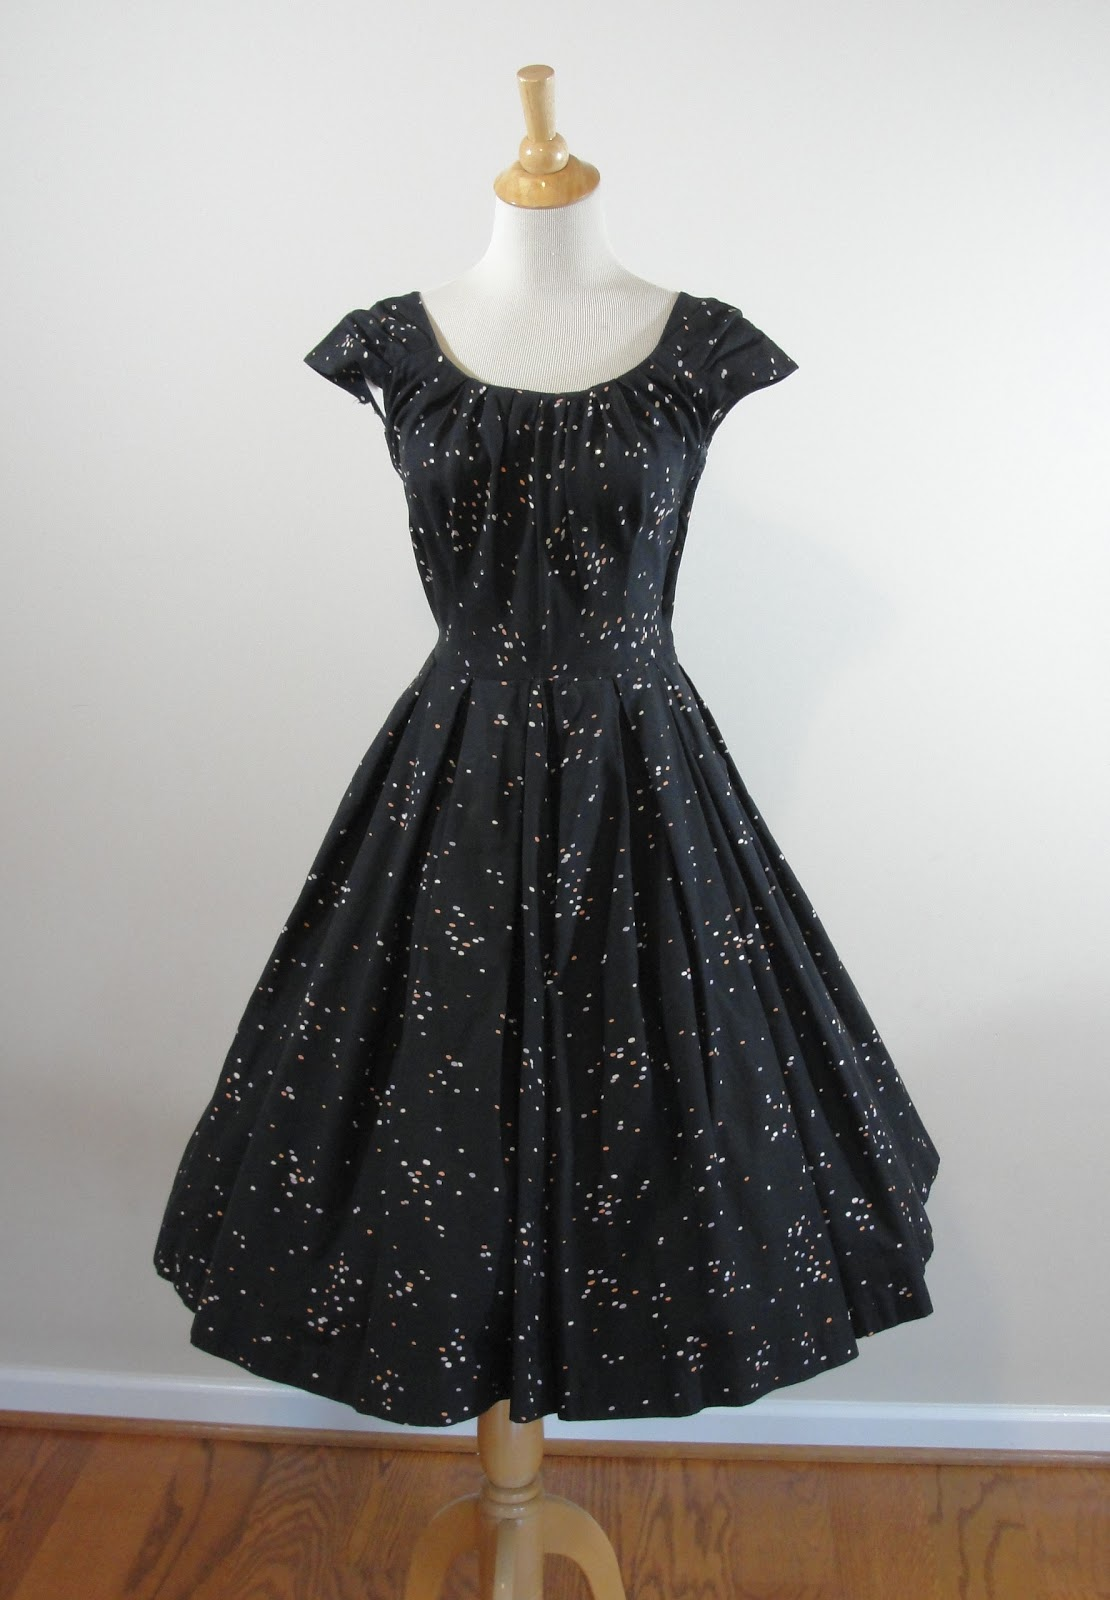 HOUSE OF LENORA: The DIY Files: 1950s Tailored Junior Black Confetti ...